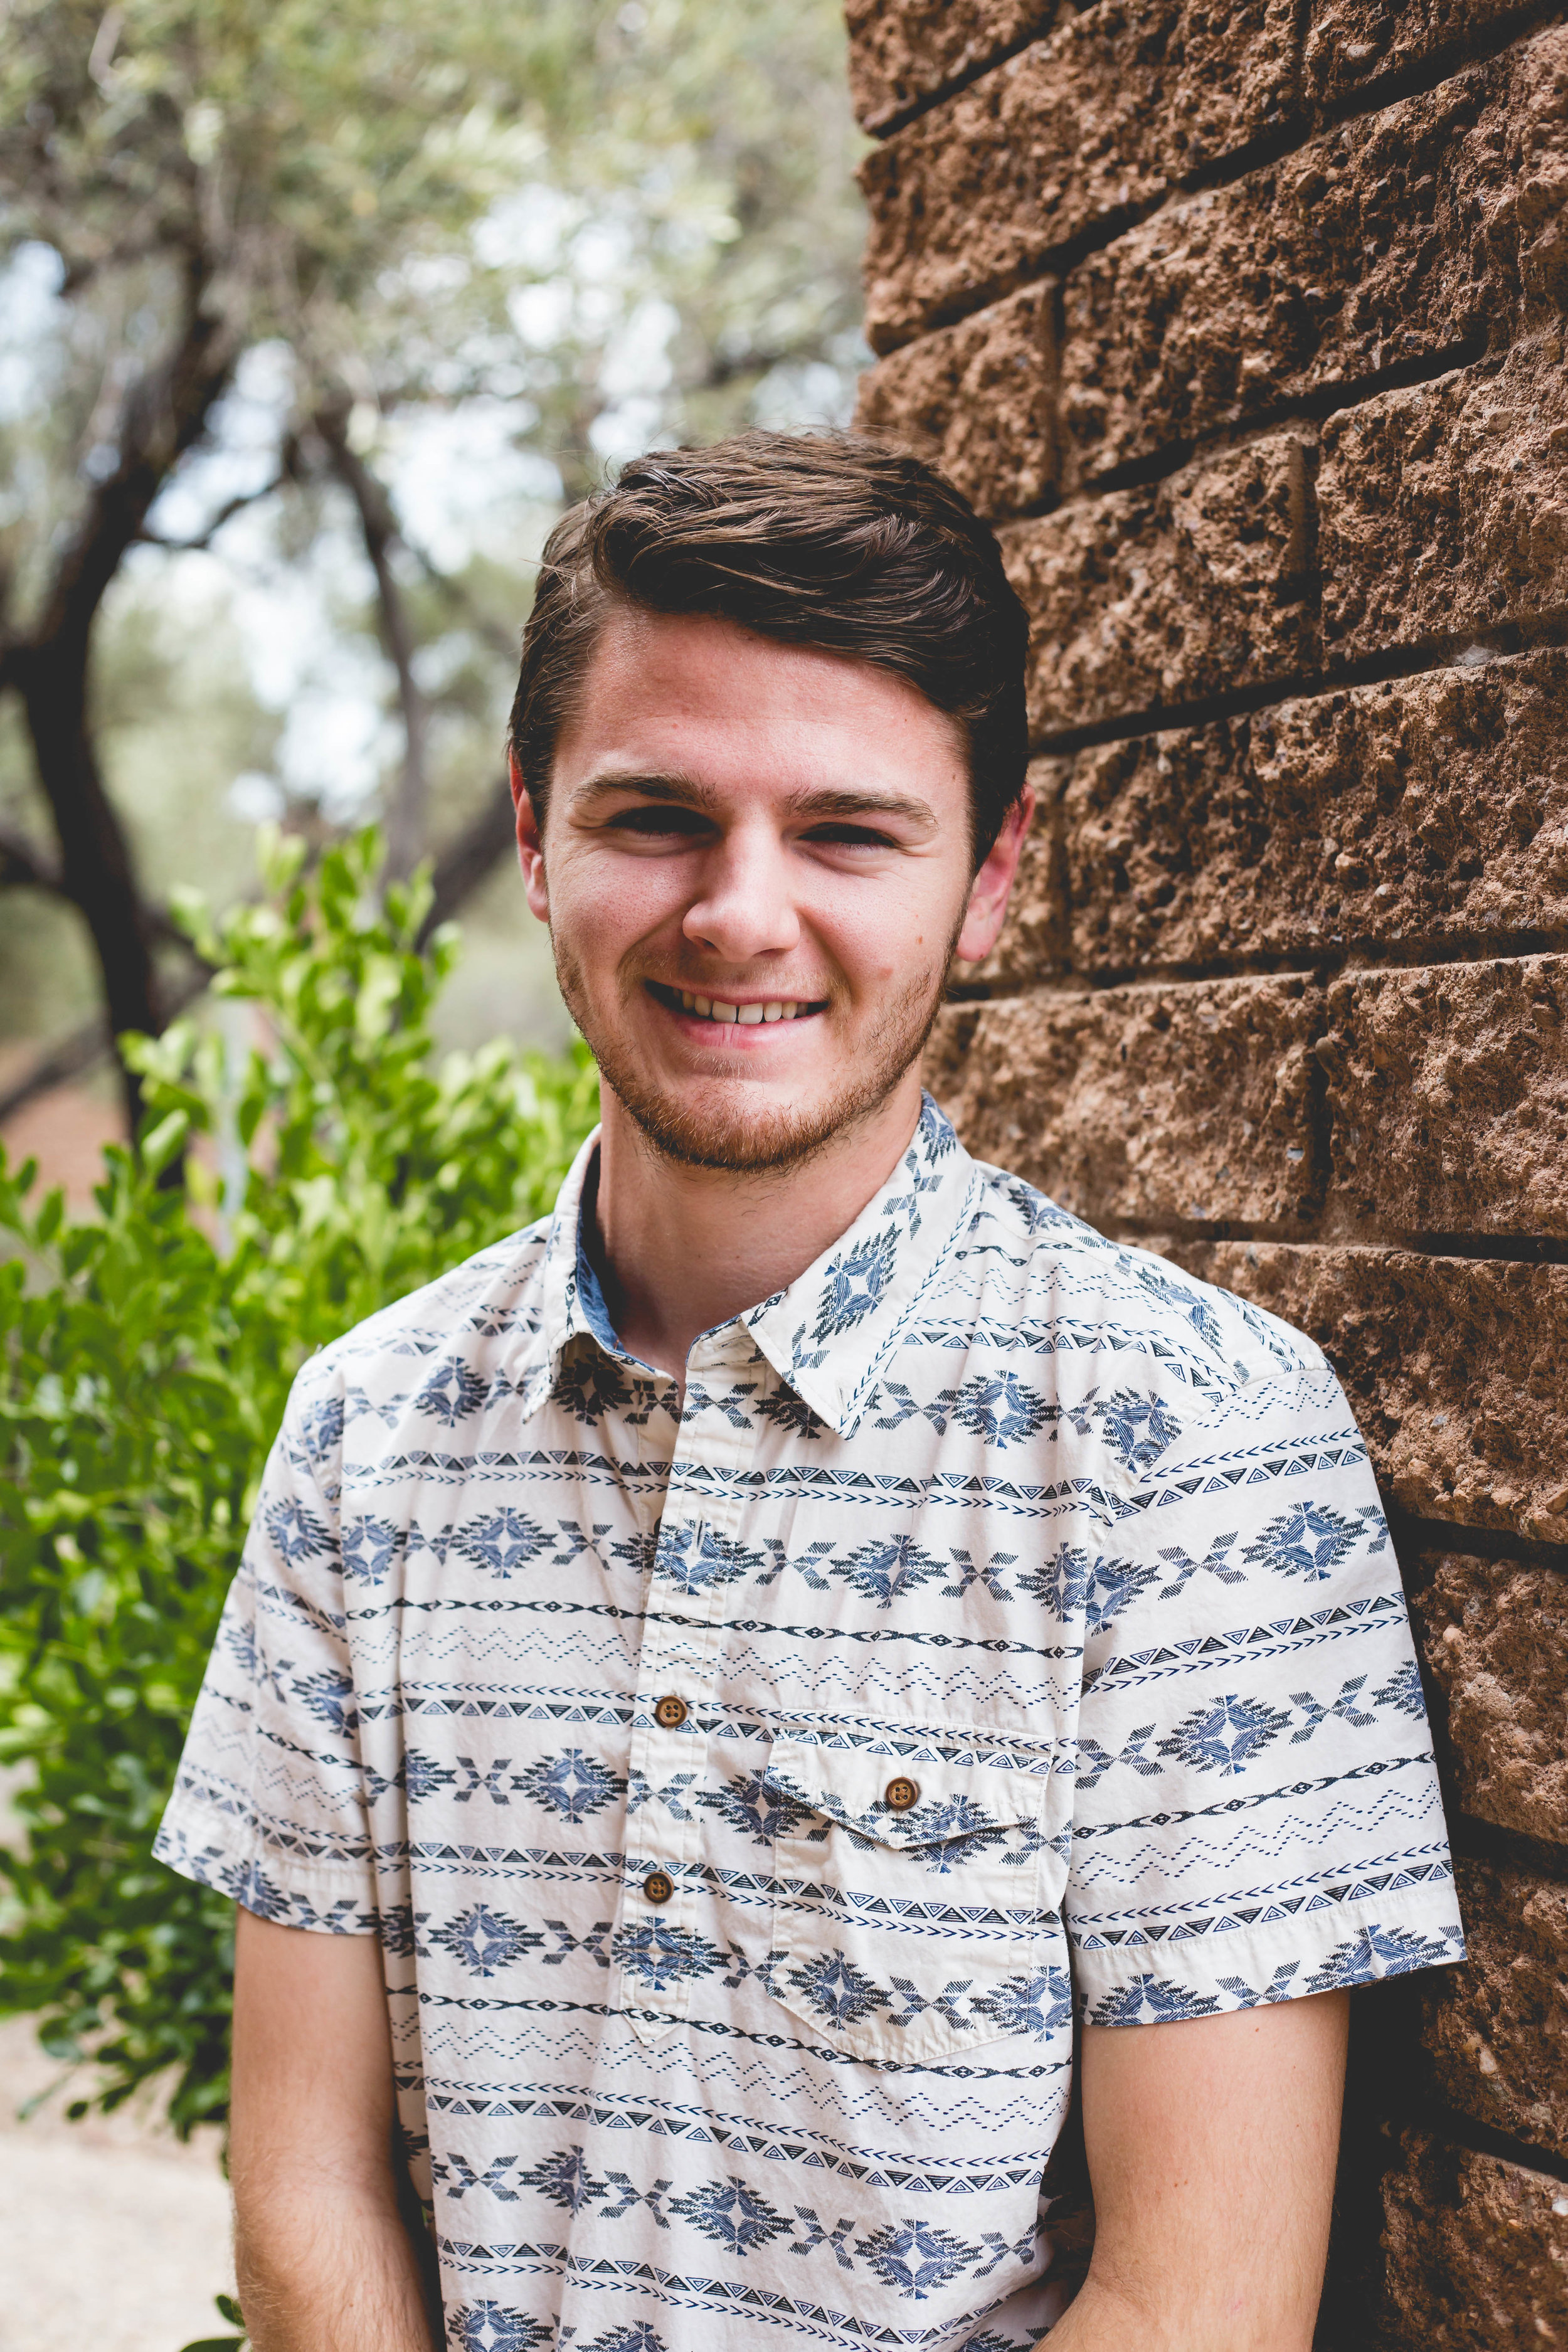 Ryan Phillips - Ryan is currently a student at Pima Community College working on his Associates Degree to get his EA. He graduated from Desert Christian High School in 2015. He enjoys spending time with his wife, family, and friends.Ryan has been working for Steven Phillips and Associates since 2015. Ryan works on various accounting projects for clients and strives to satisfy each person he speaks to and does business for.Email: ryan@stevephillipscpa.com